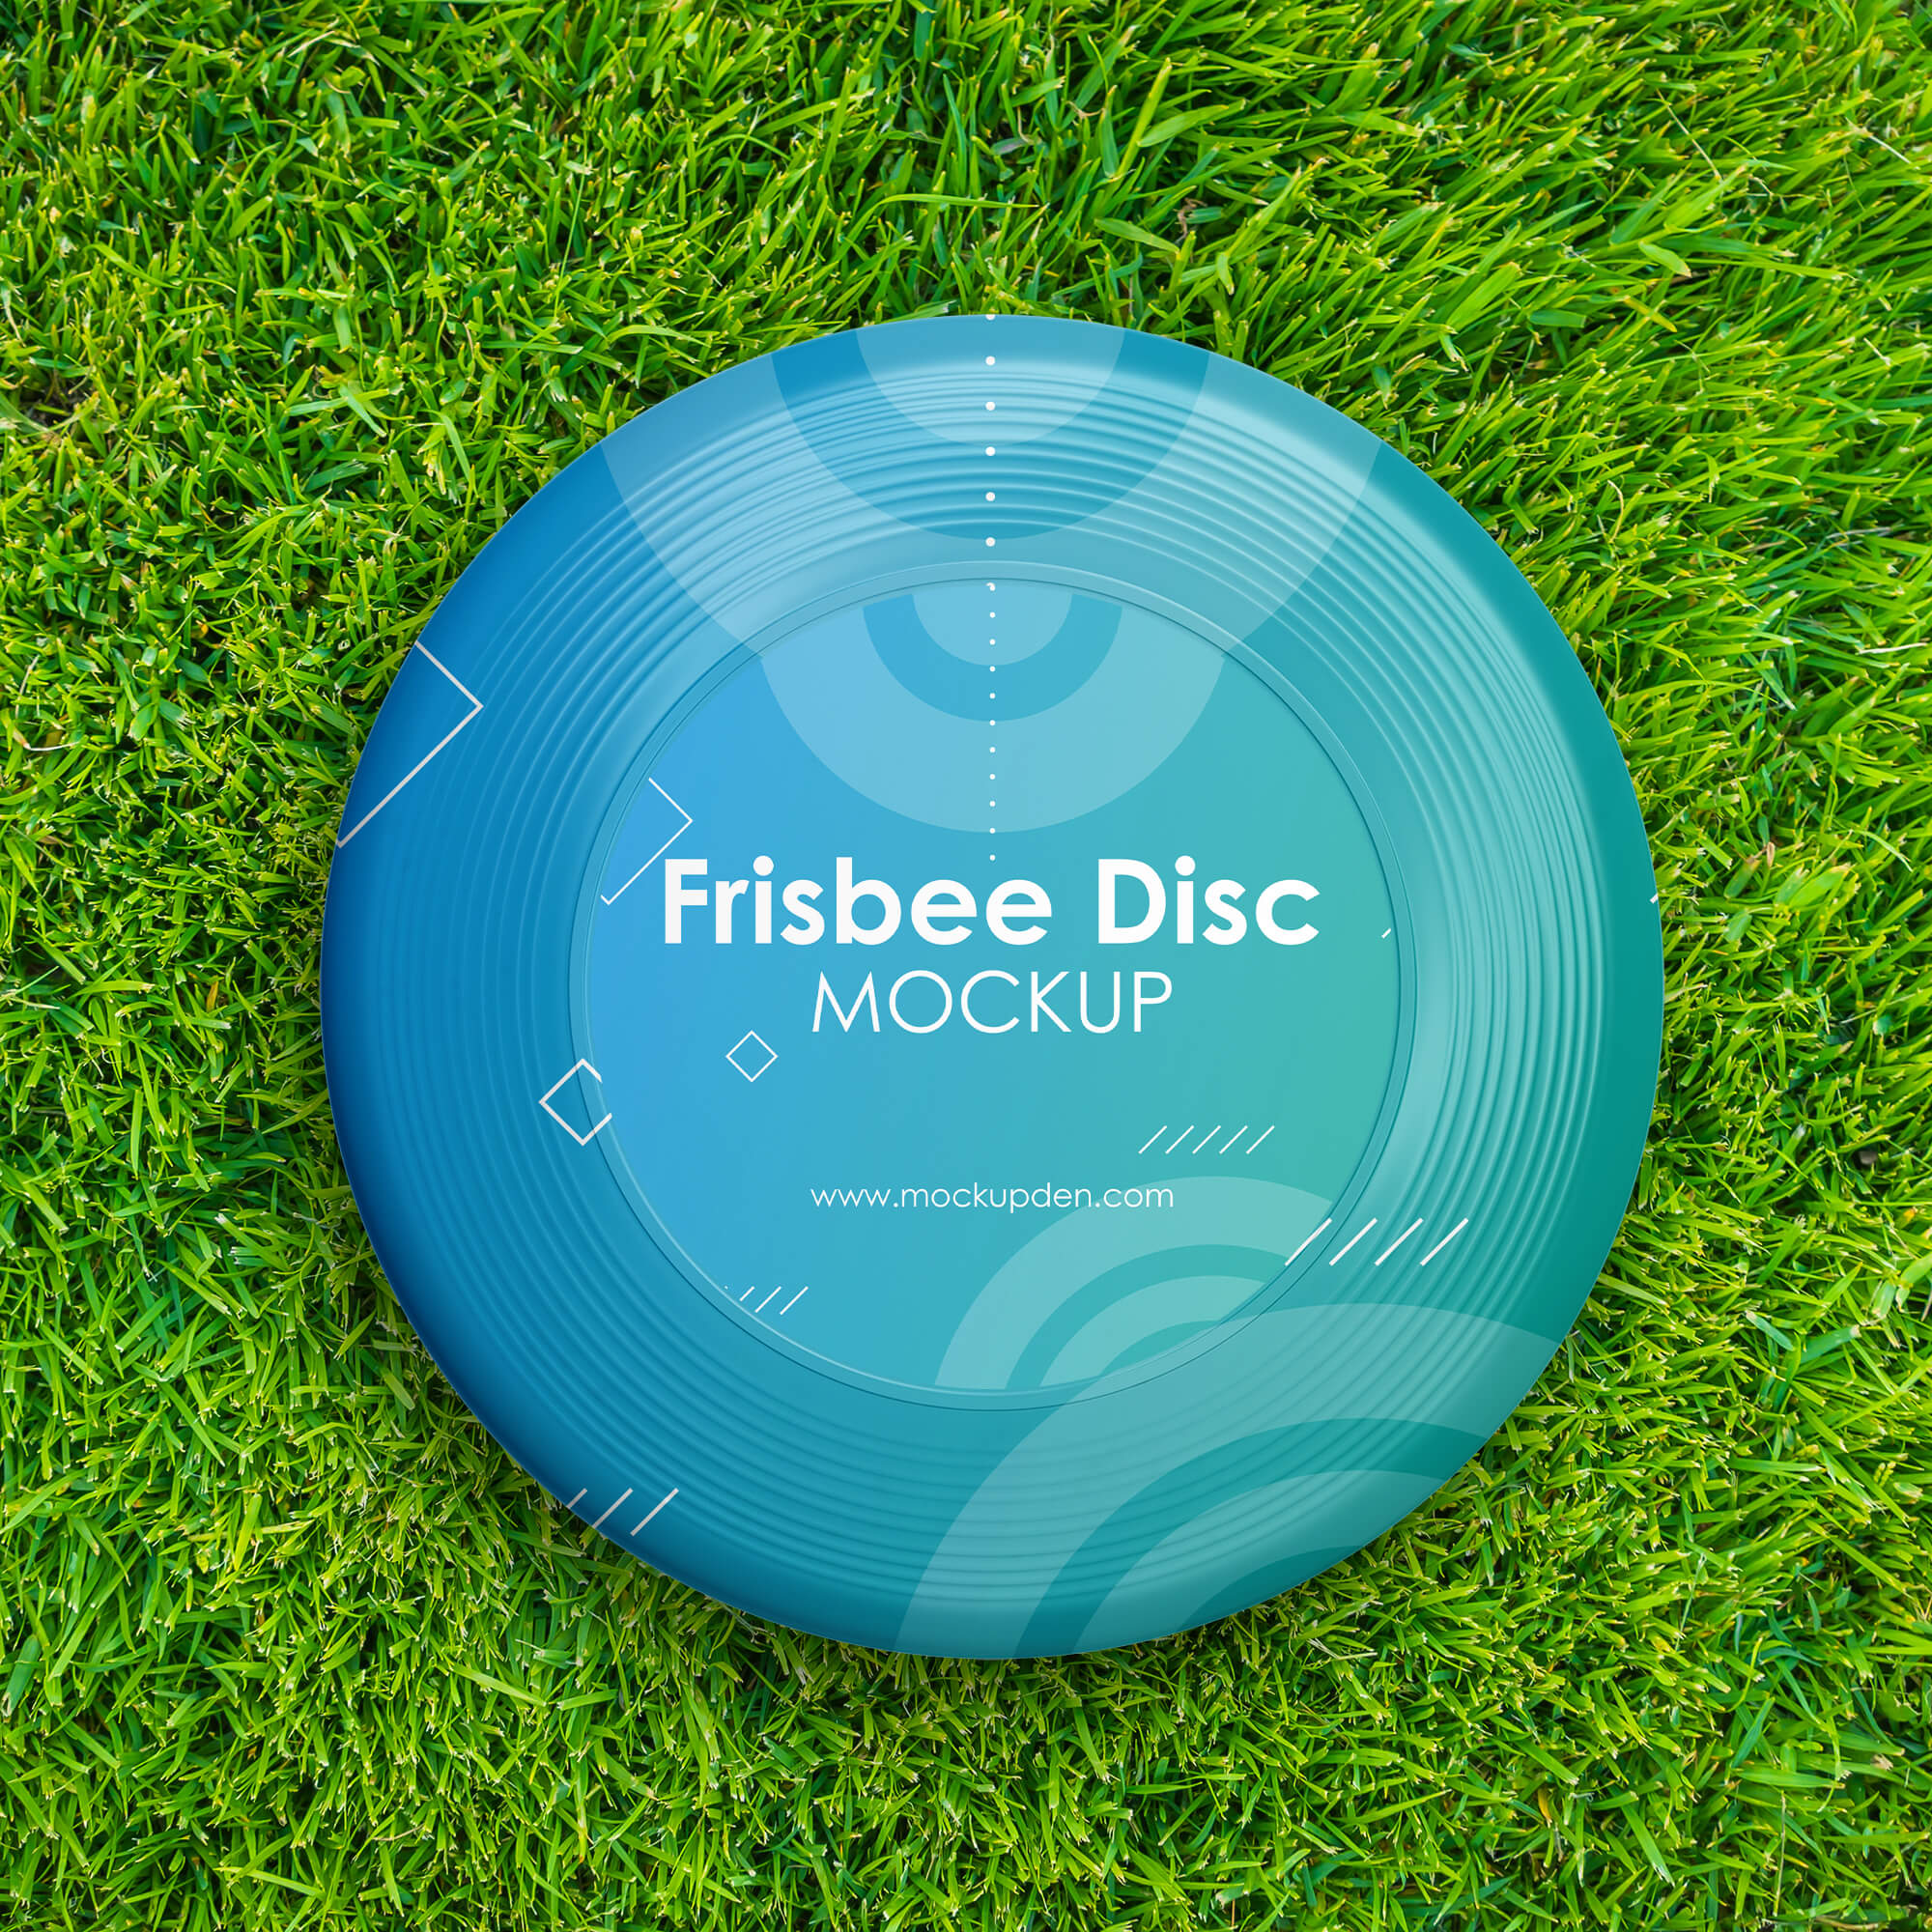 Free Frisbee Disc Mockup PSD Template